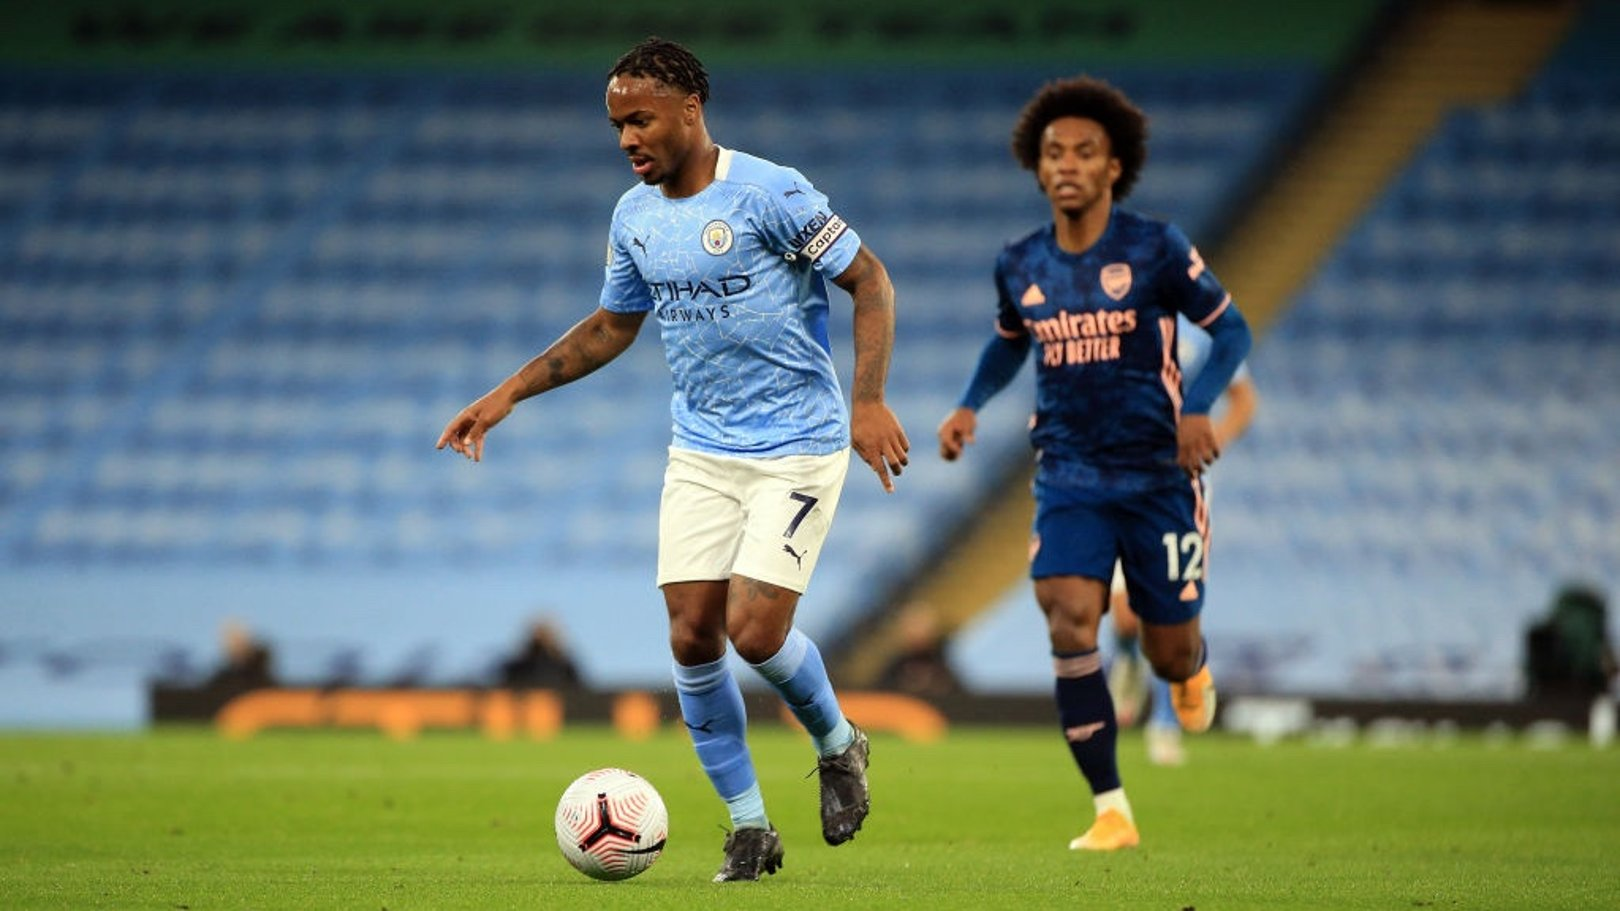 CAPTAIN FANTASTIC: Sterling leads the team forward on the attack again.